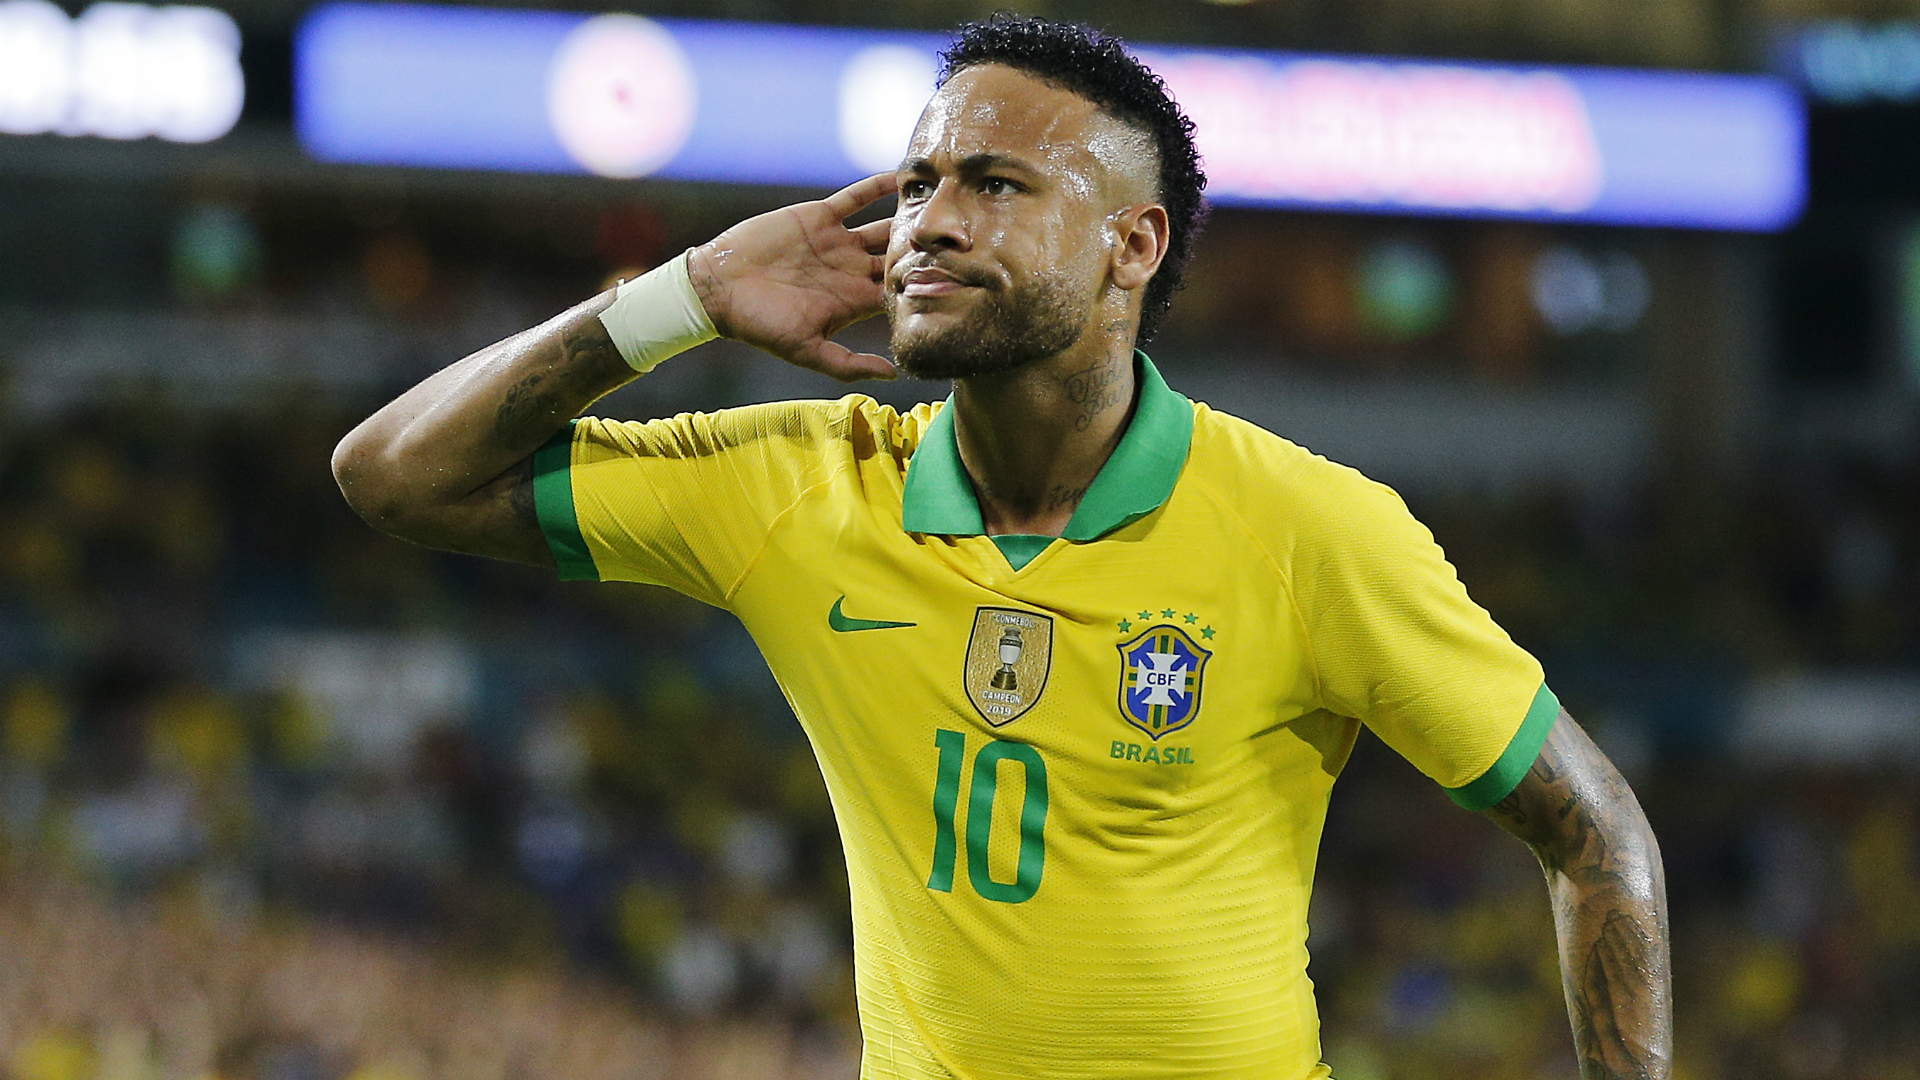 Brazil 2-2 Colombia: PSG star Neymar scores on return